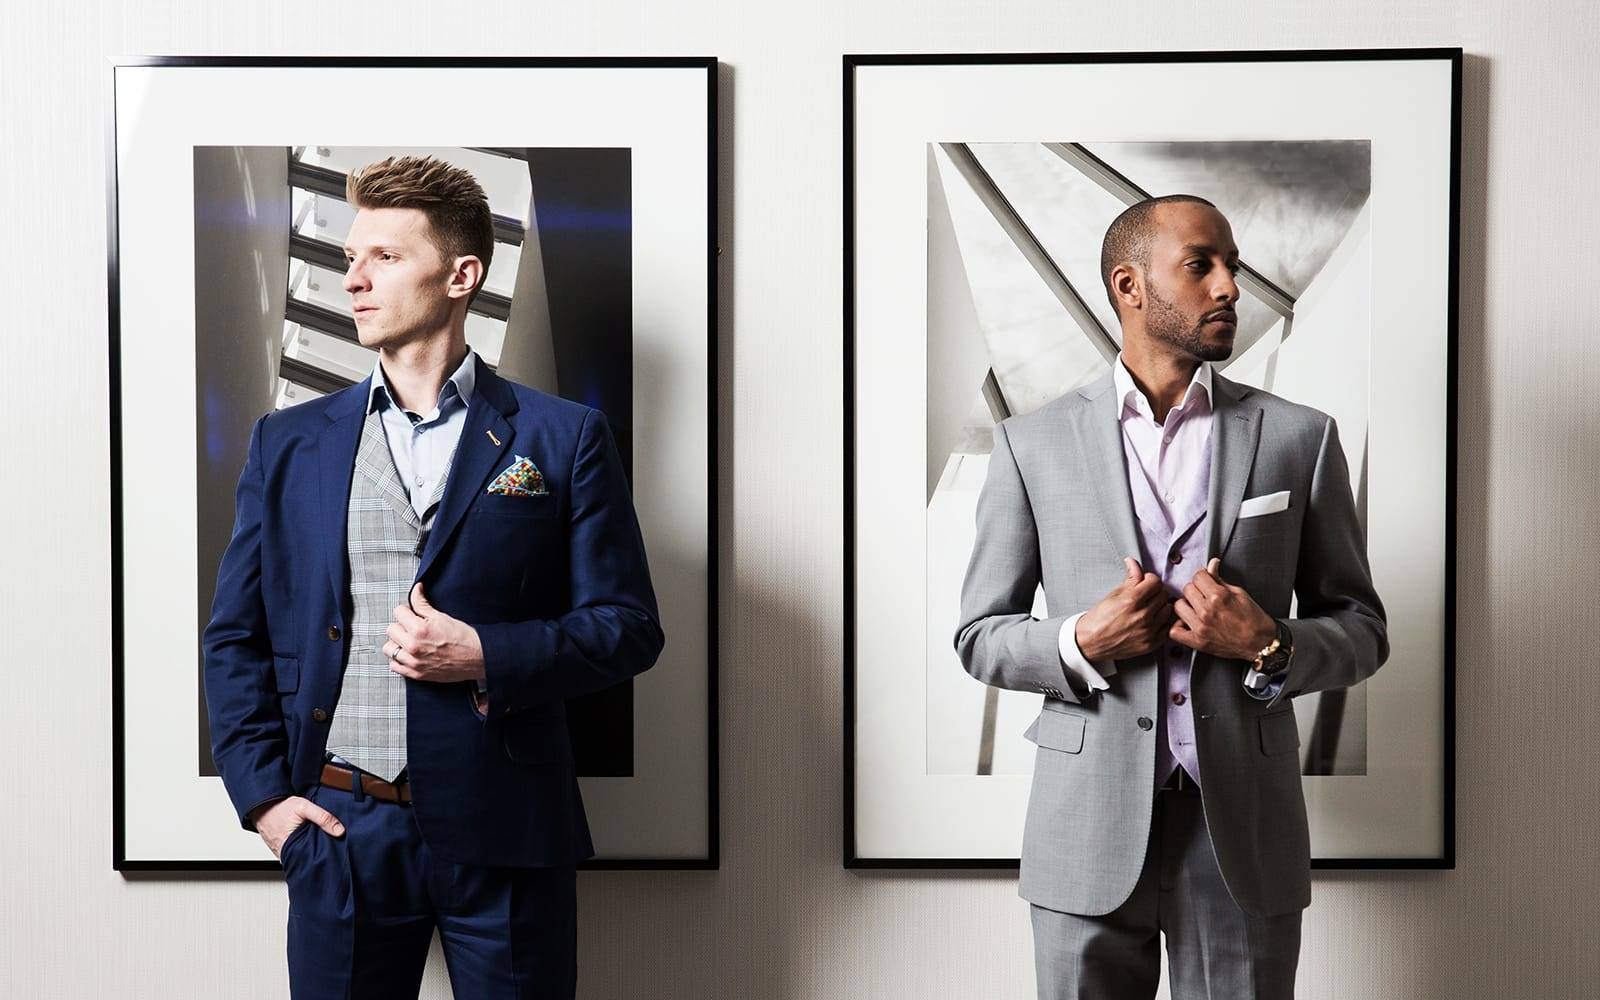 Two elegantly suited young men pose in bespoke suits facing away from each other